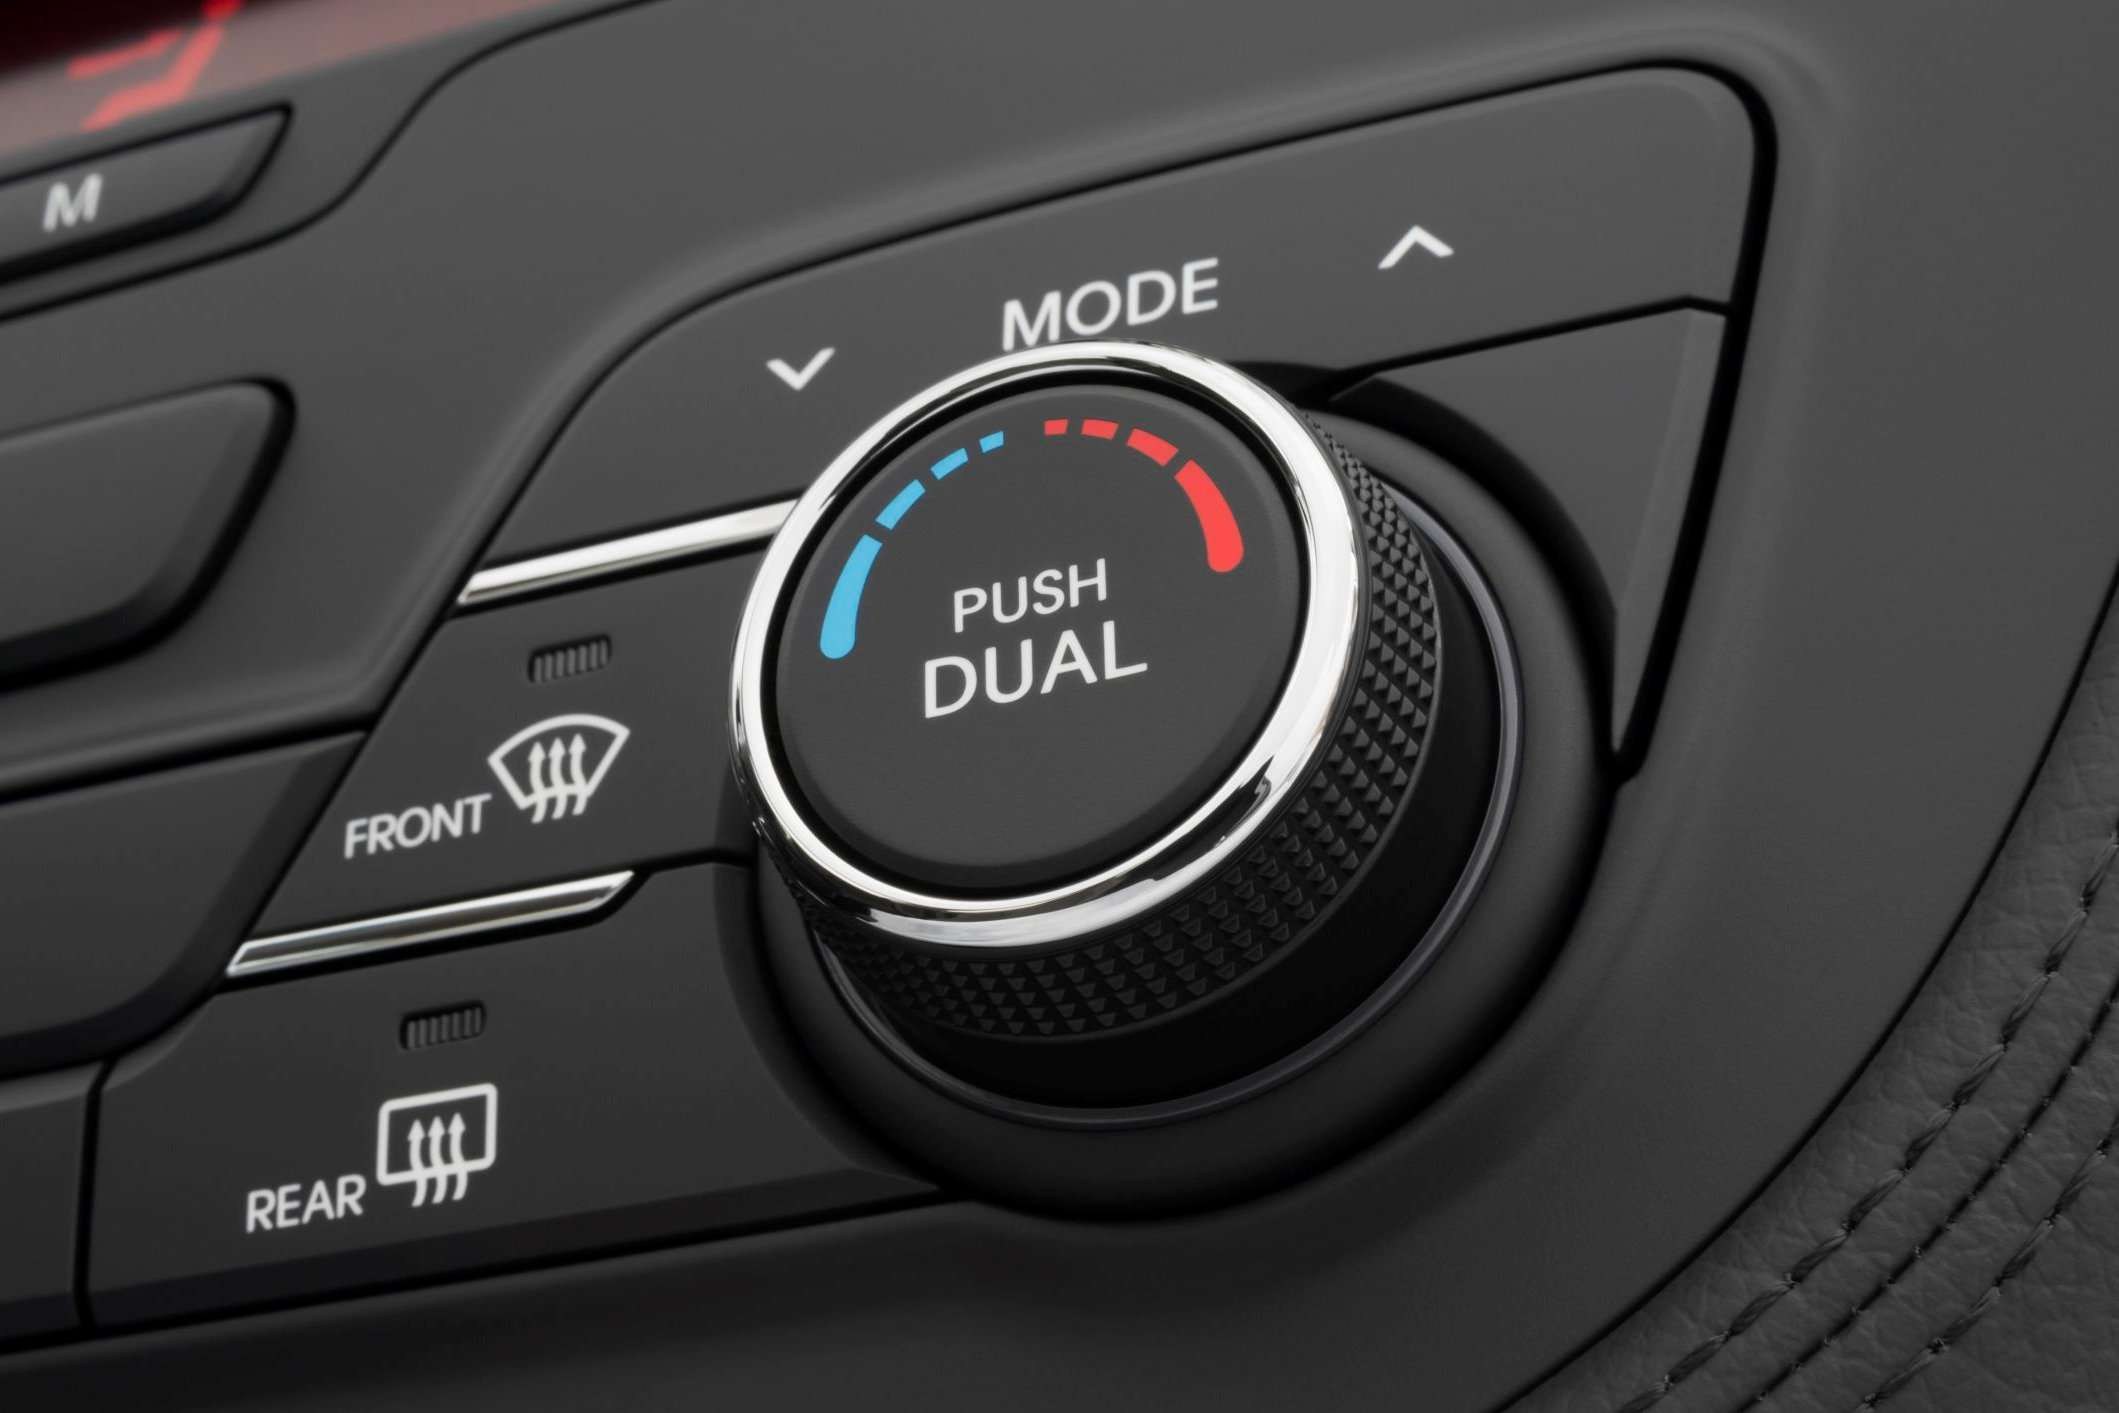 Temperature control dial and defroster buttons inside a car